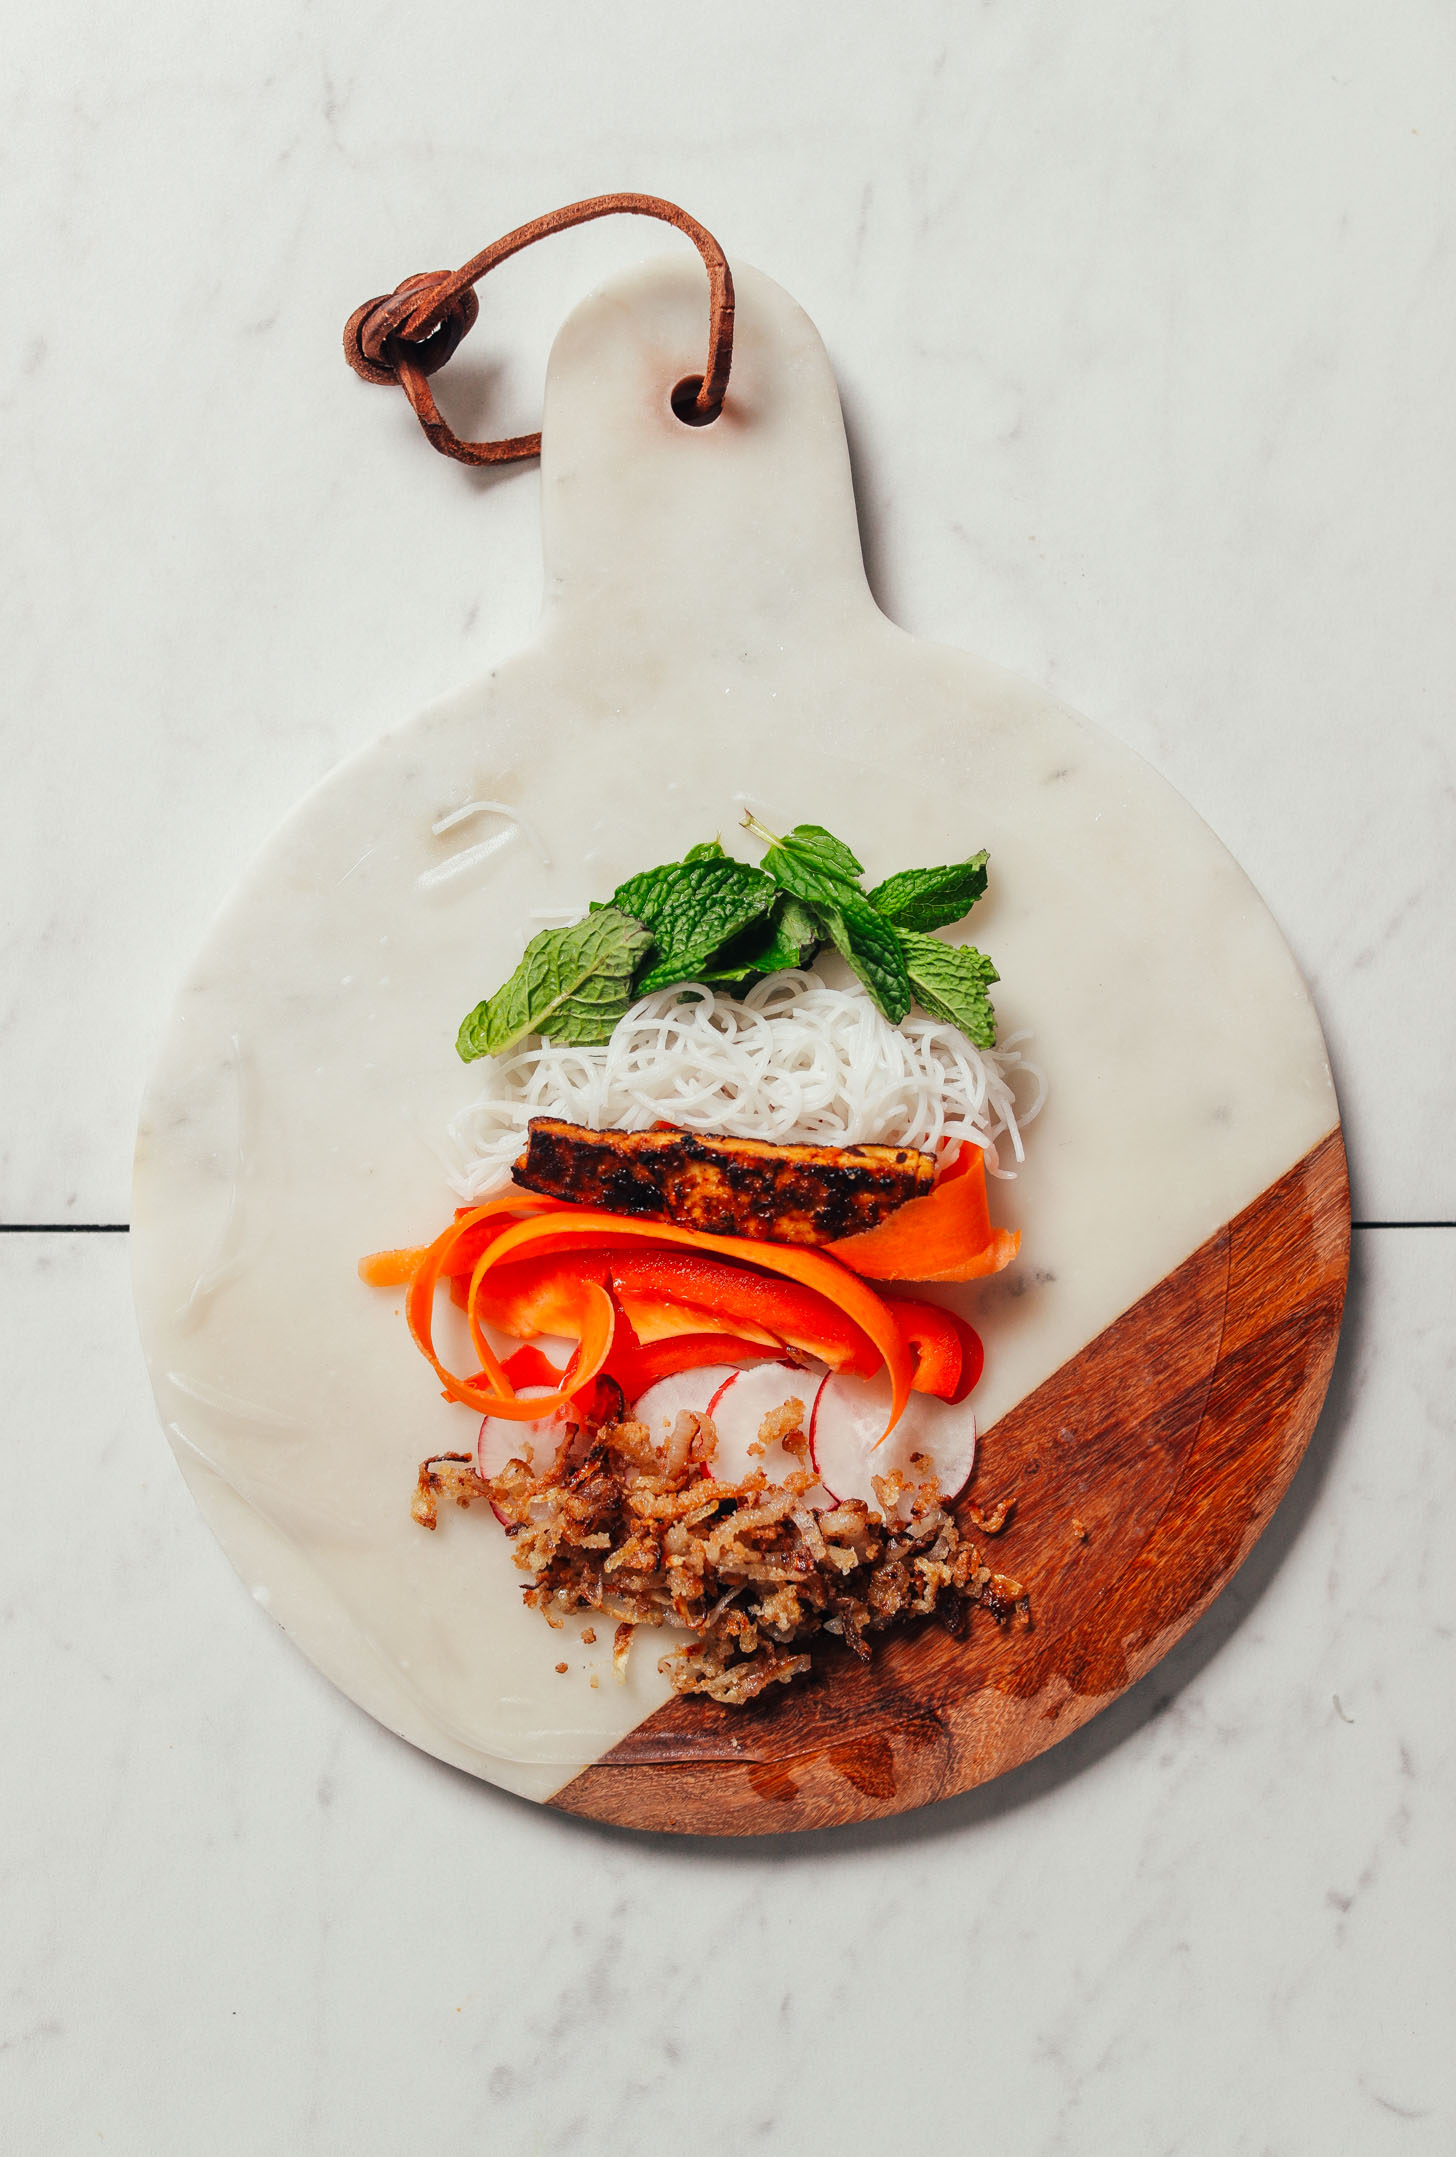 Marble and wood cutting board with a softened spring roll paper topped with fresh ingredients